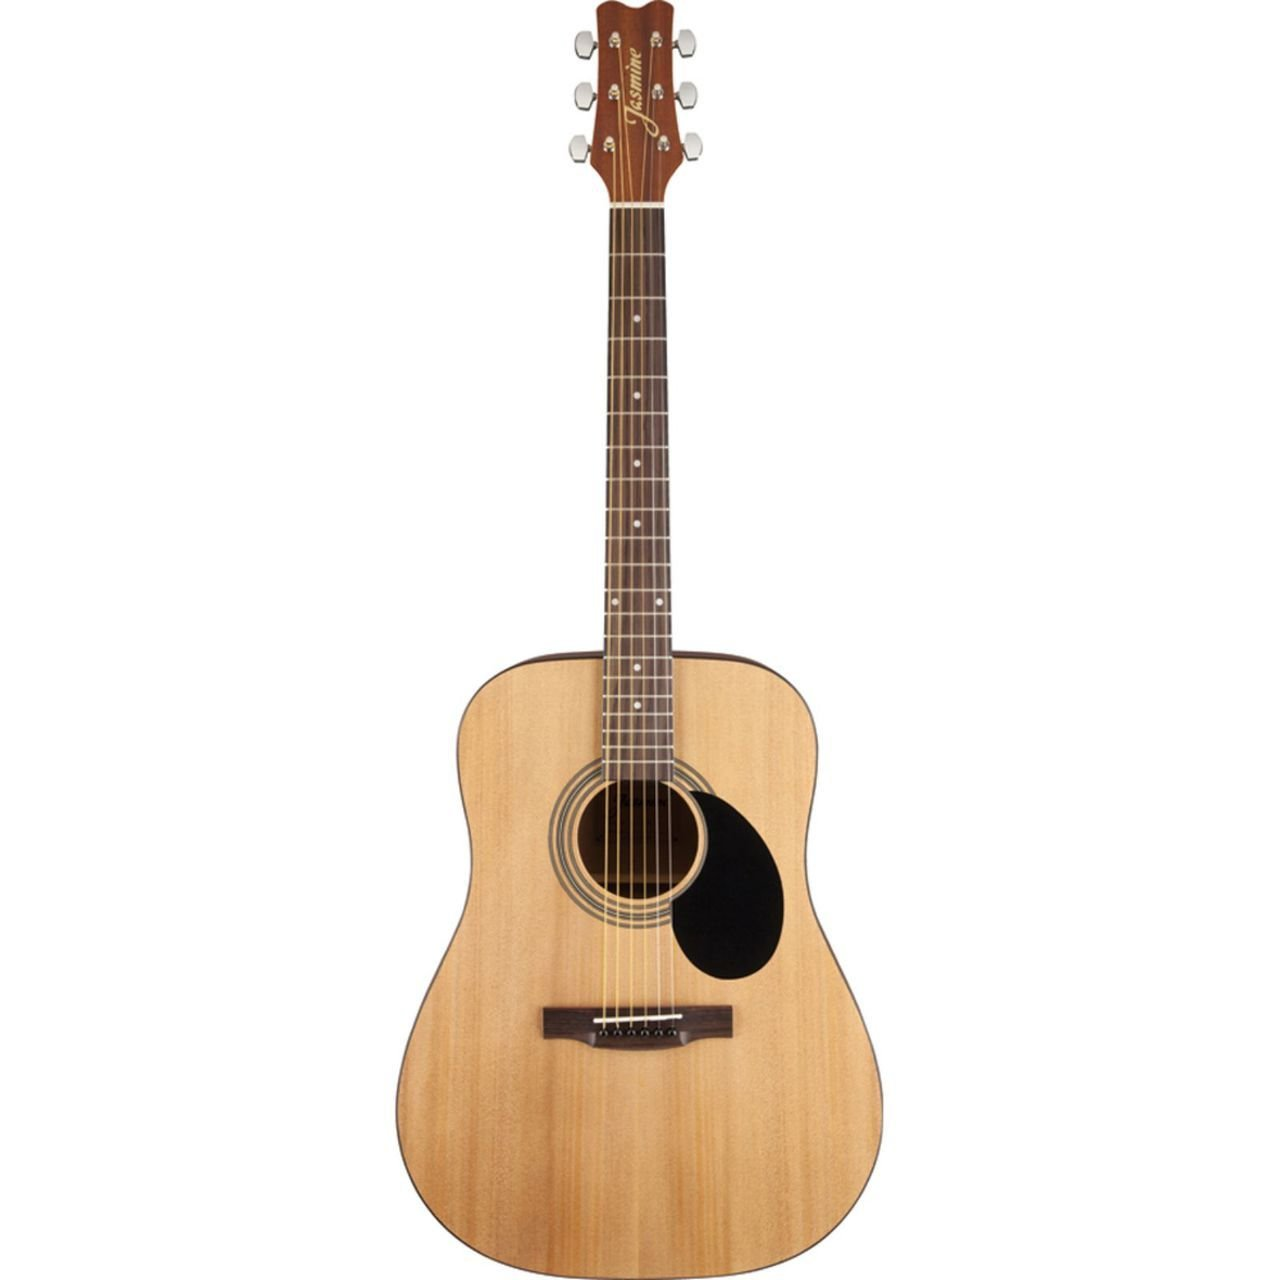 Jasmine S35 Dreadnaught Acoustic Guitar